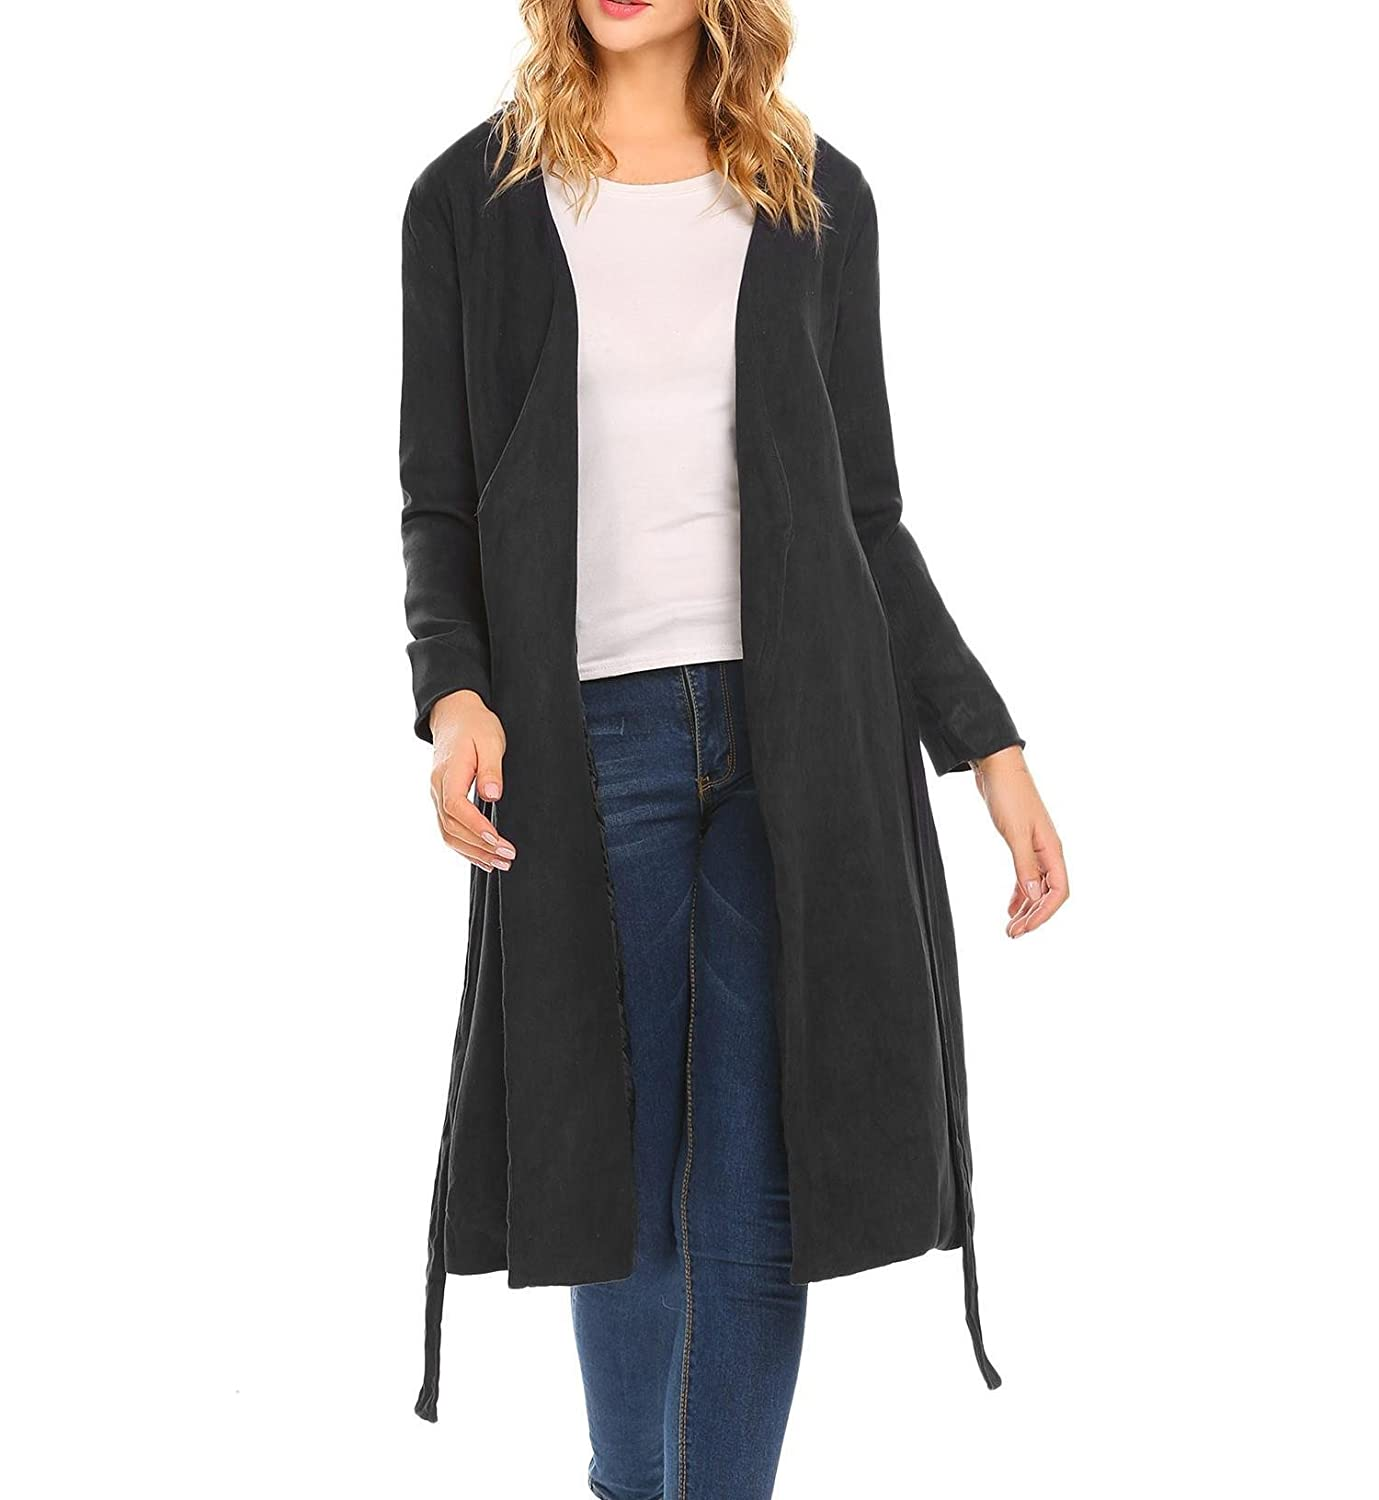 Dethler Women's Open Front Long Trench Coat Solid Knitted Sweater Faux Cardigan